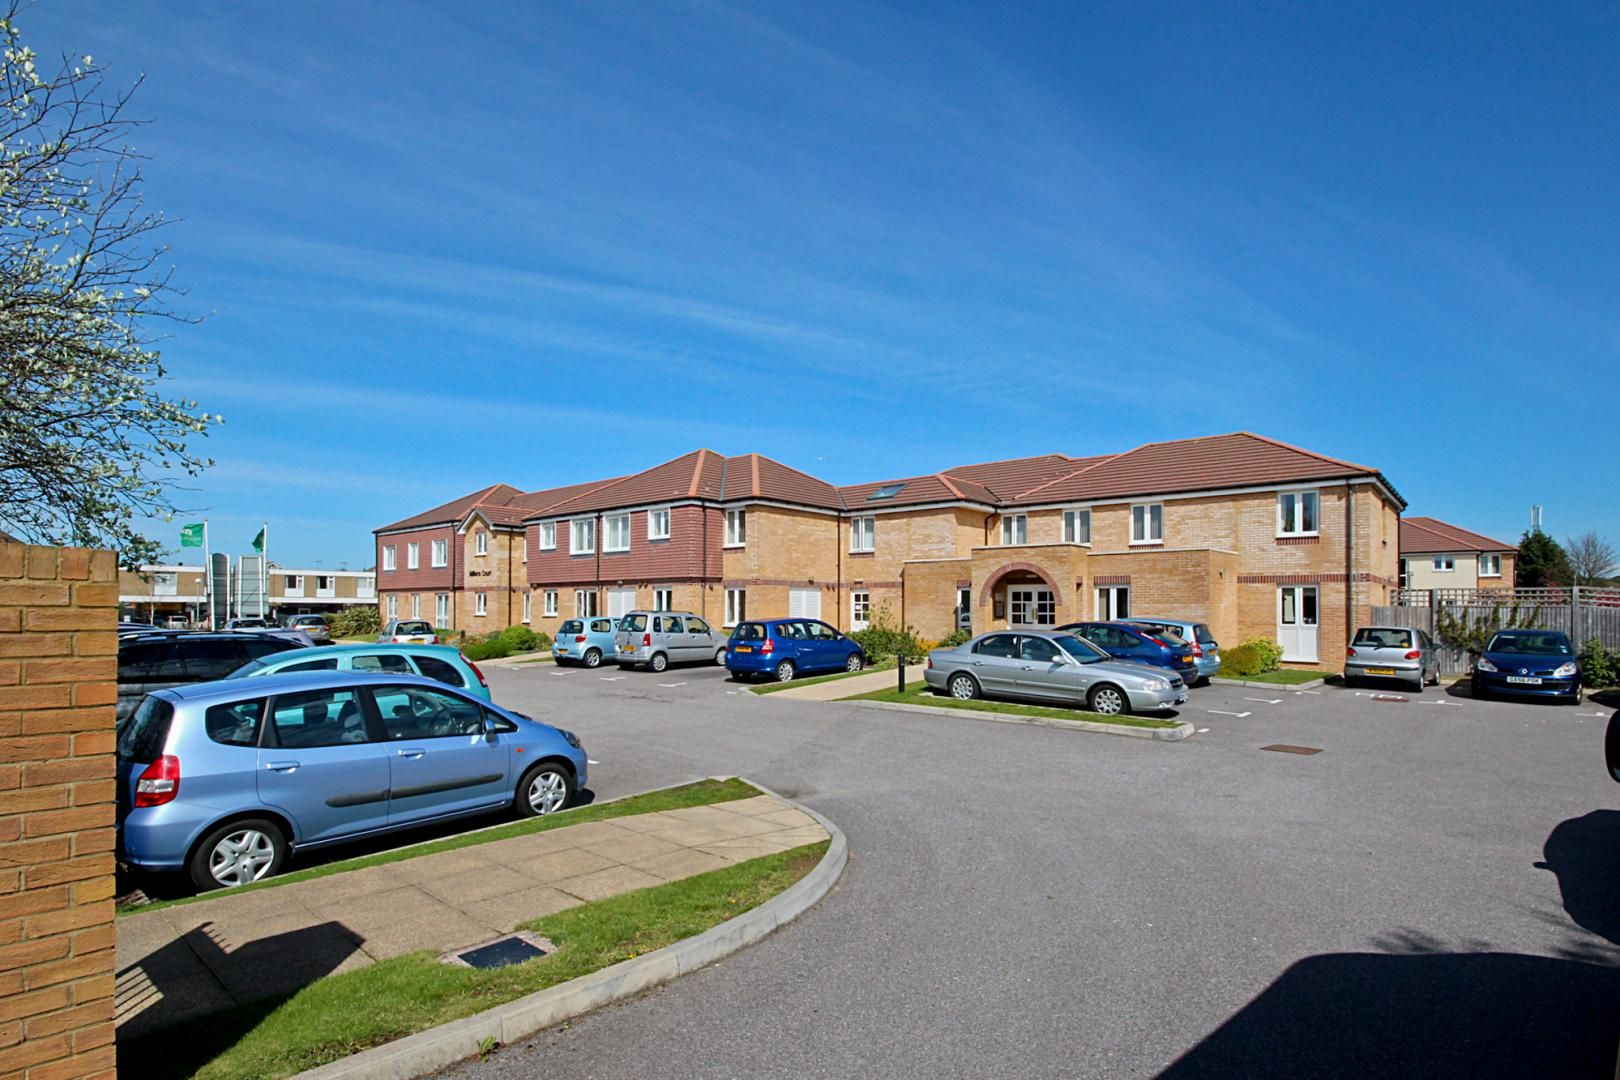 2 bed for sale in East Preston - Residents car park (Property Image 13)